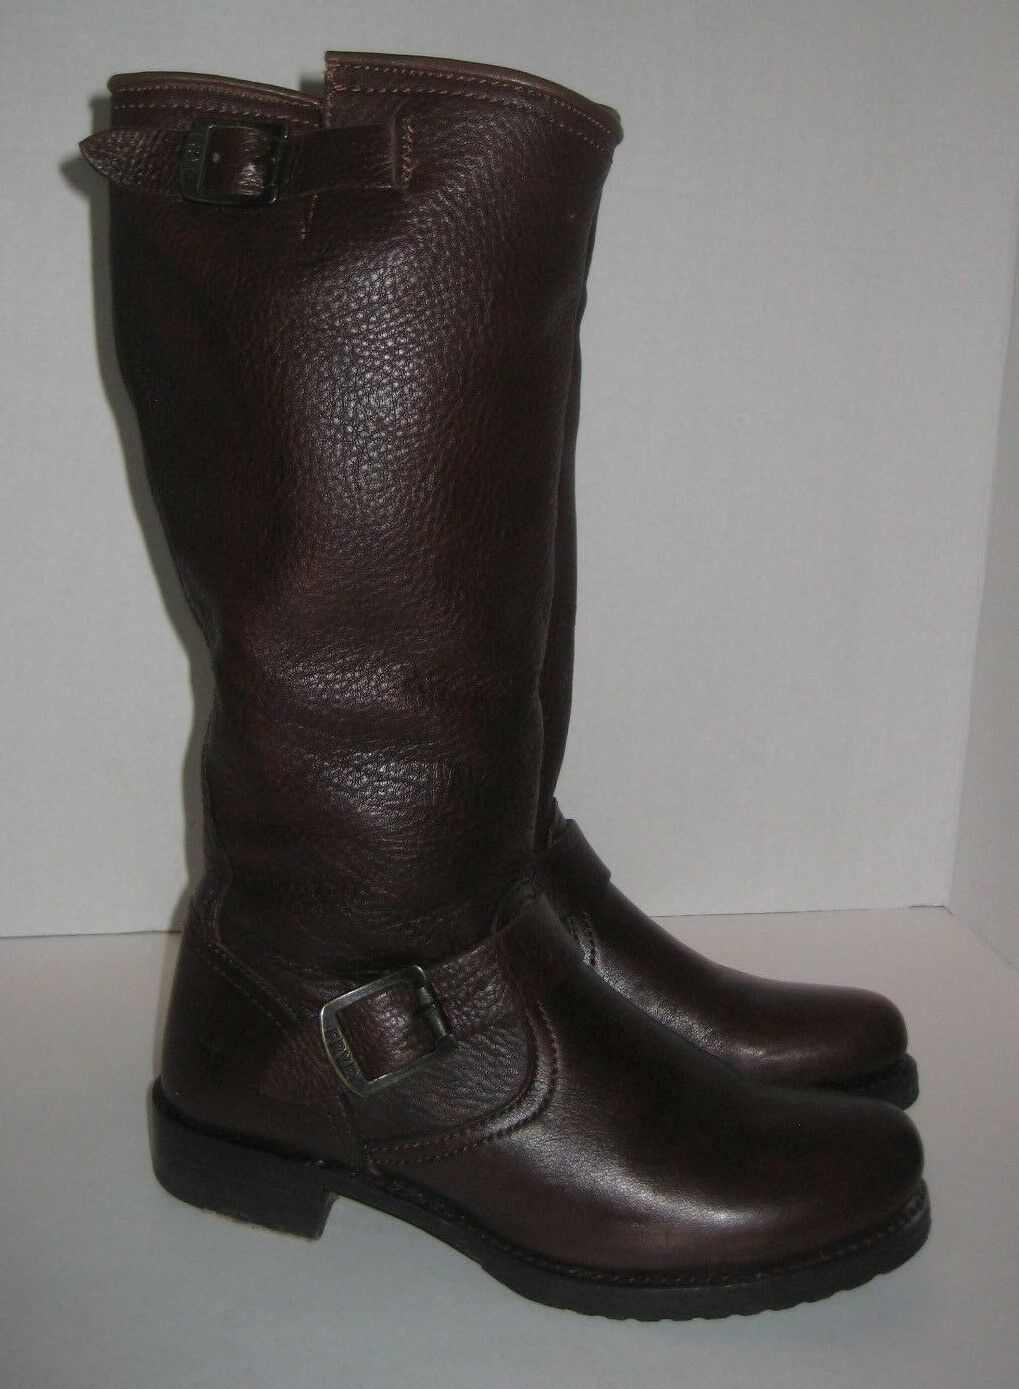 FRYE VERONICA SLOUCH LEATHER ENGINEER BOOTS BROWN WOMEN'S SIZE 8